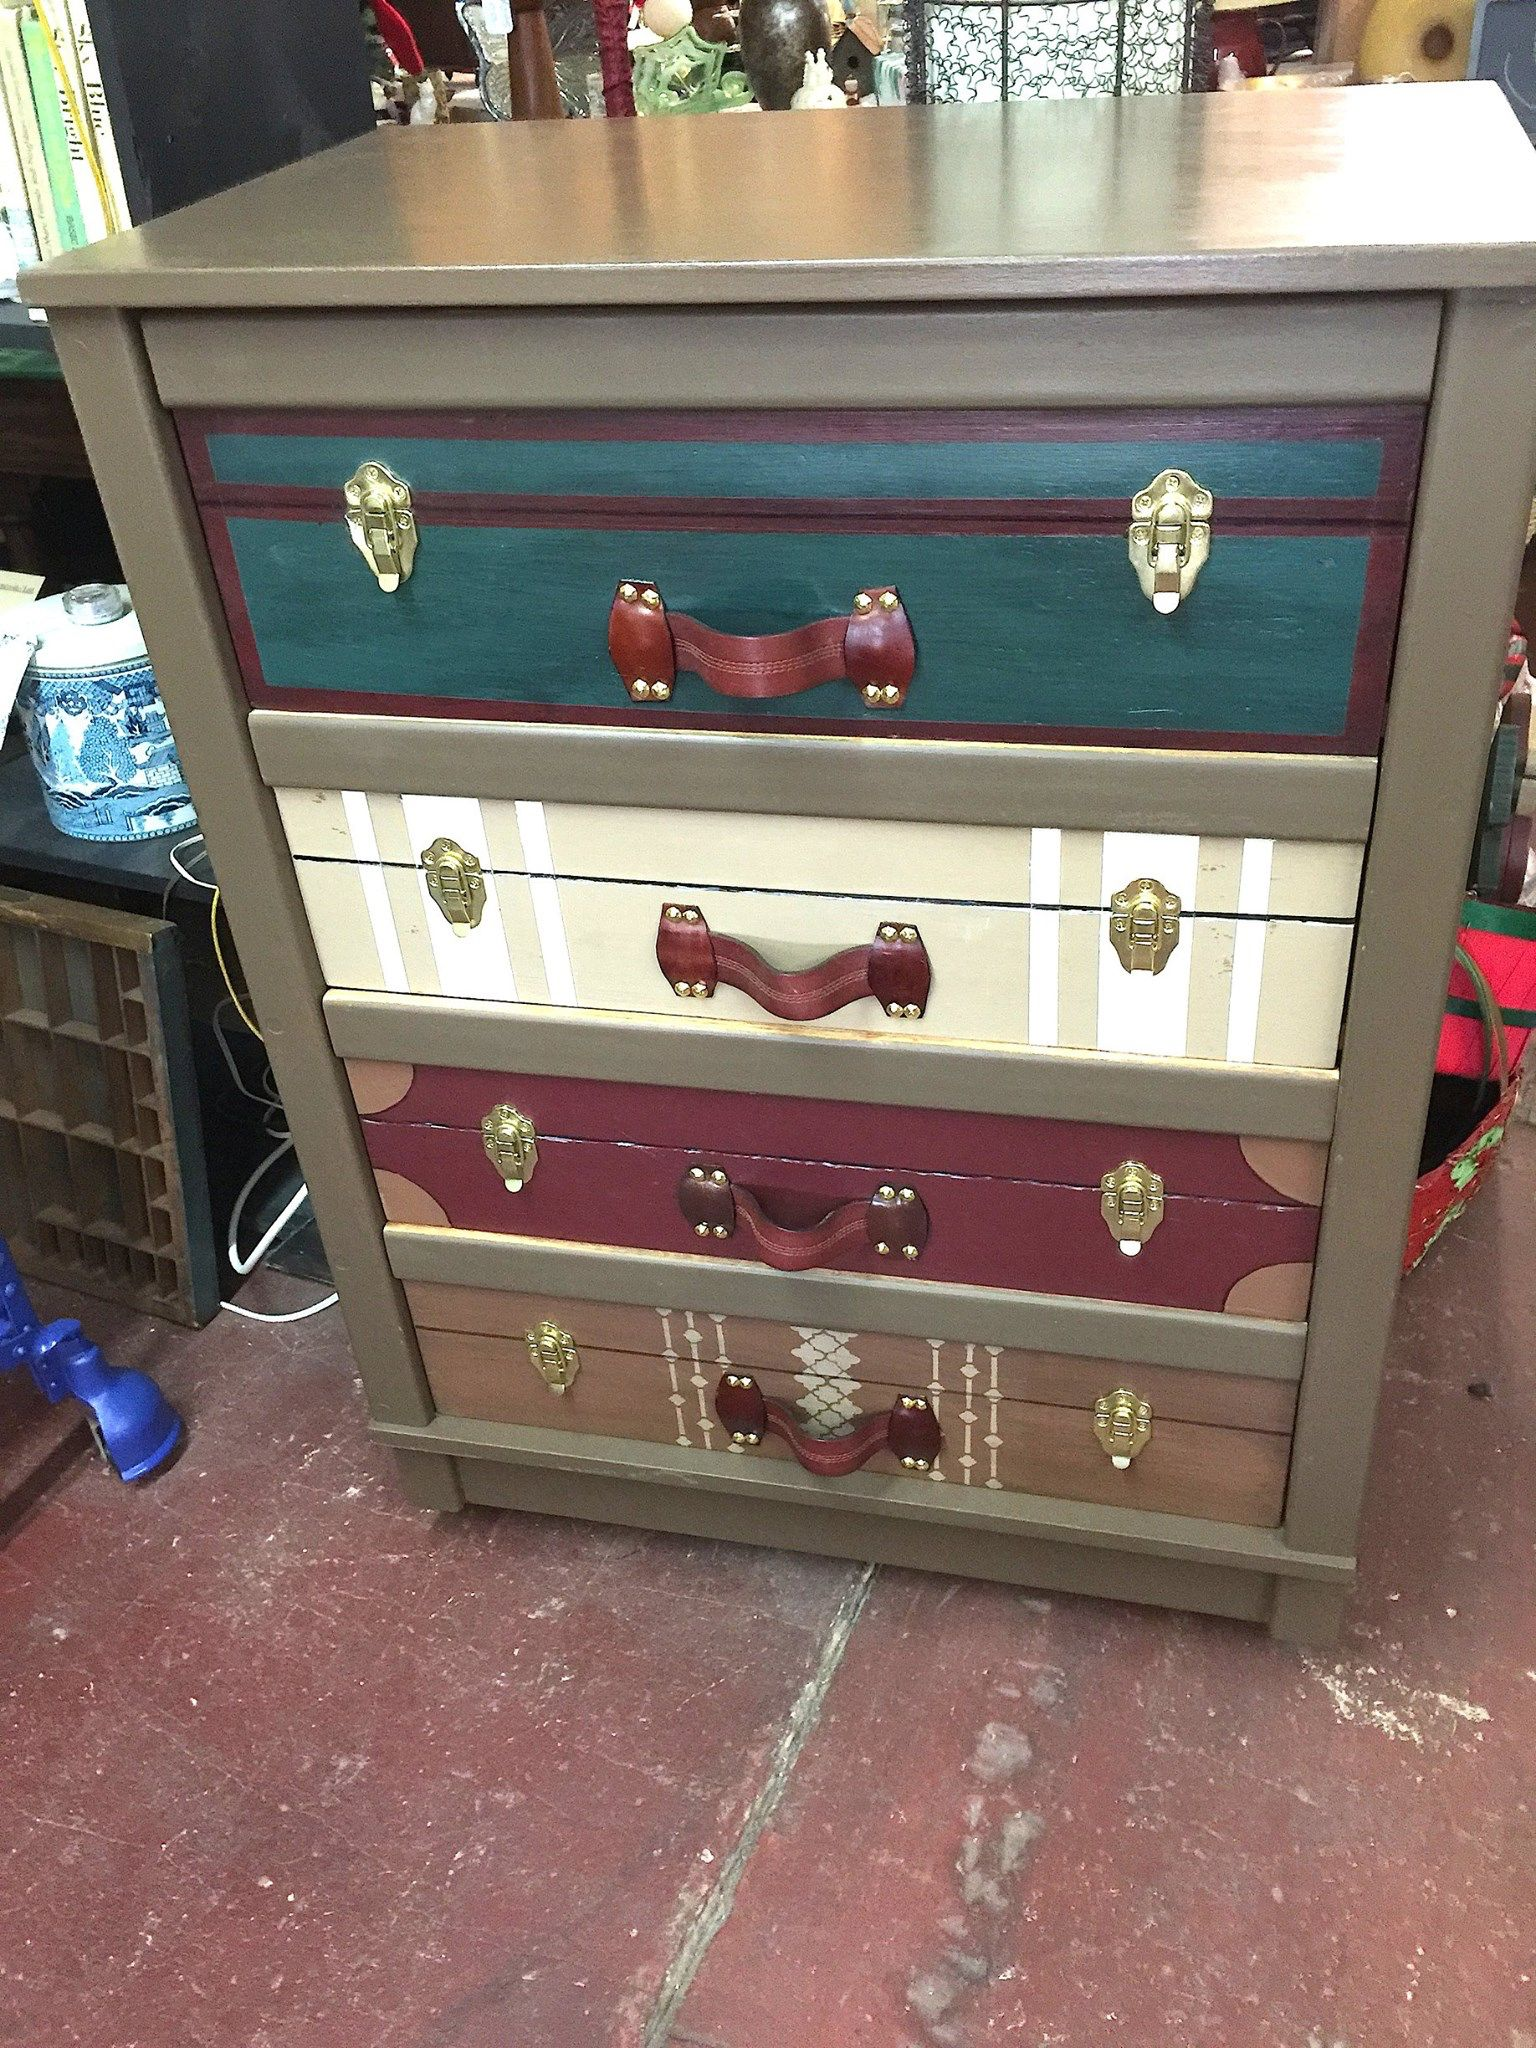 Lisa Thompson Your Funky Junk Wore Myself Out Creating This Luggage Chest Of Dressersdresser